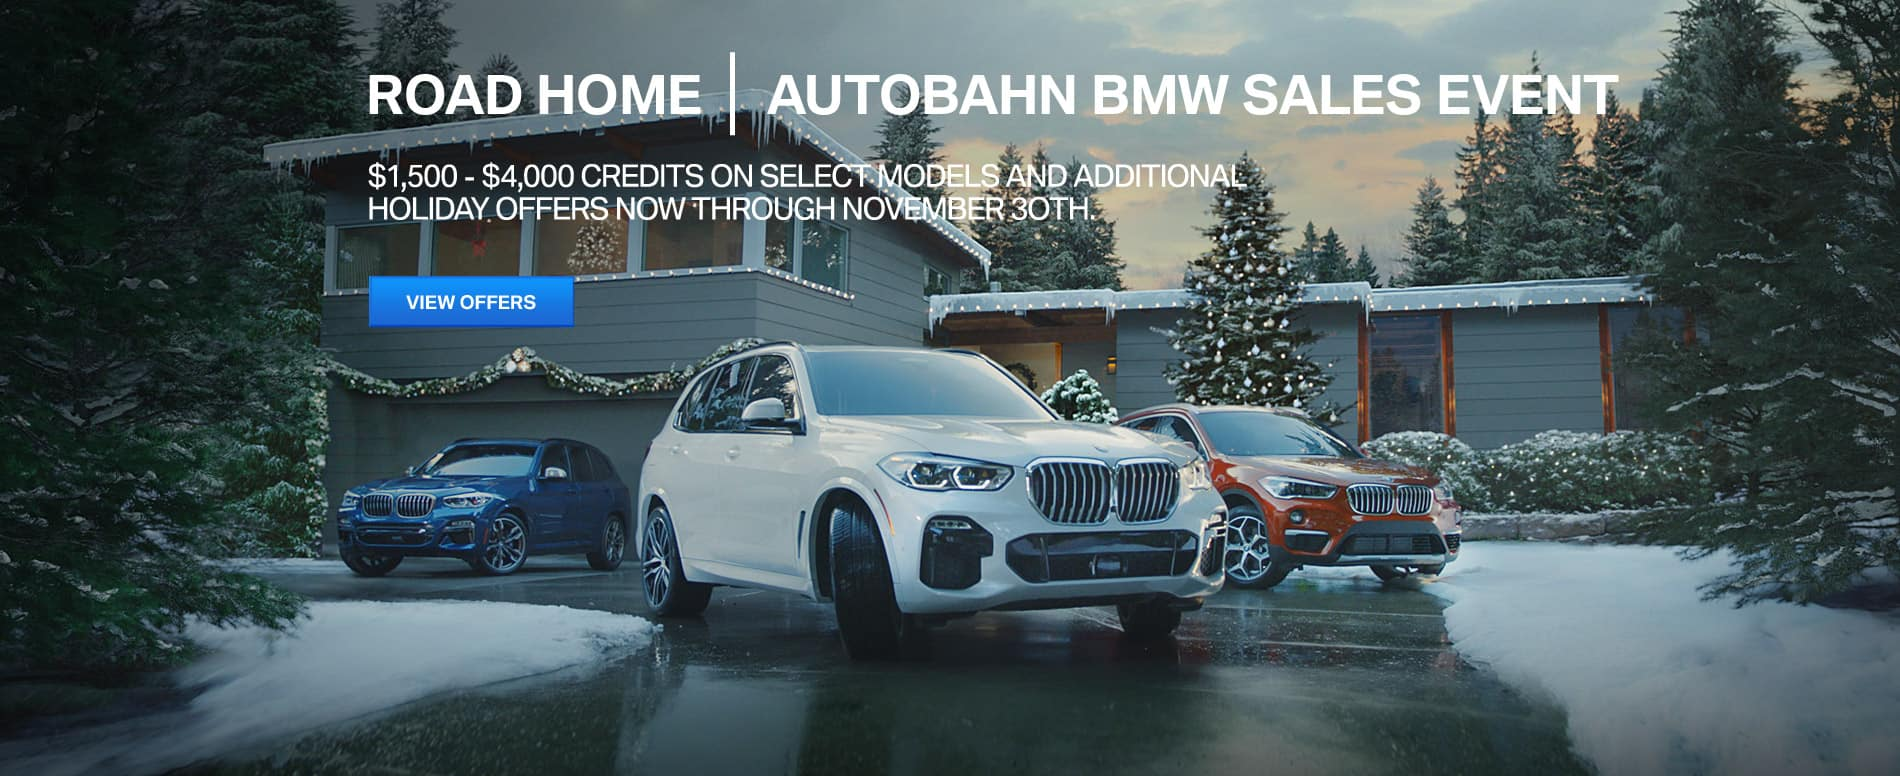 Autobahn BMW | Road Home Holiday Sales Event